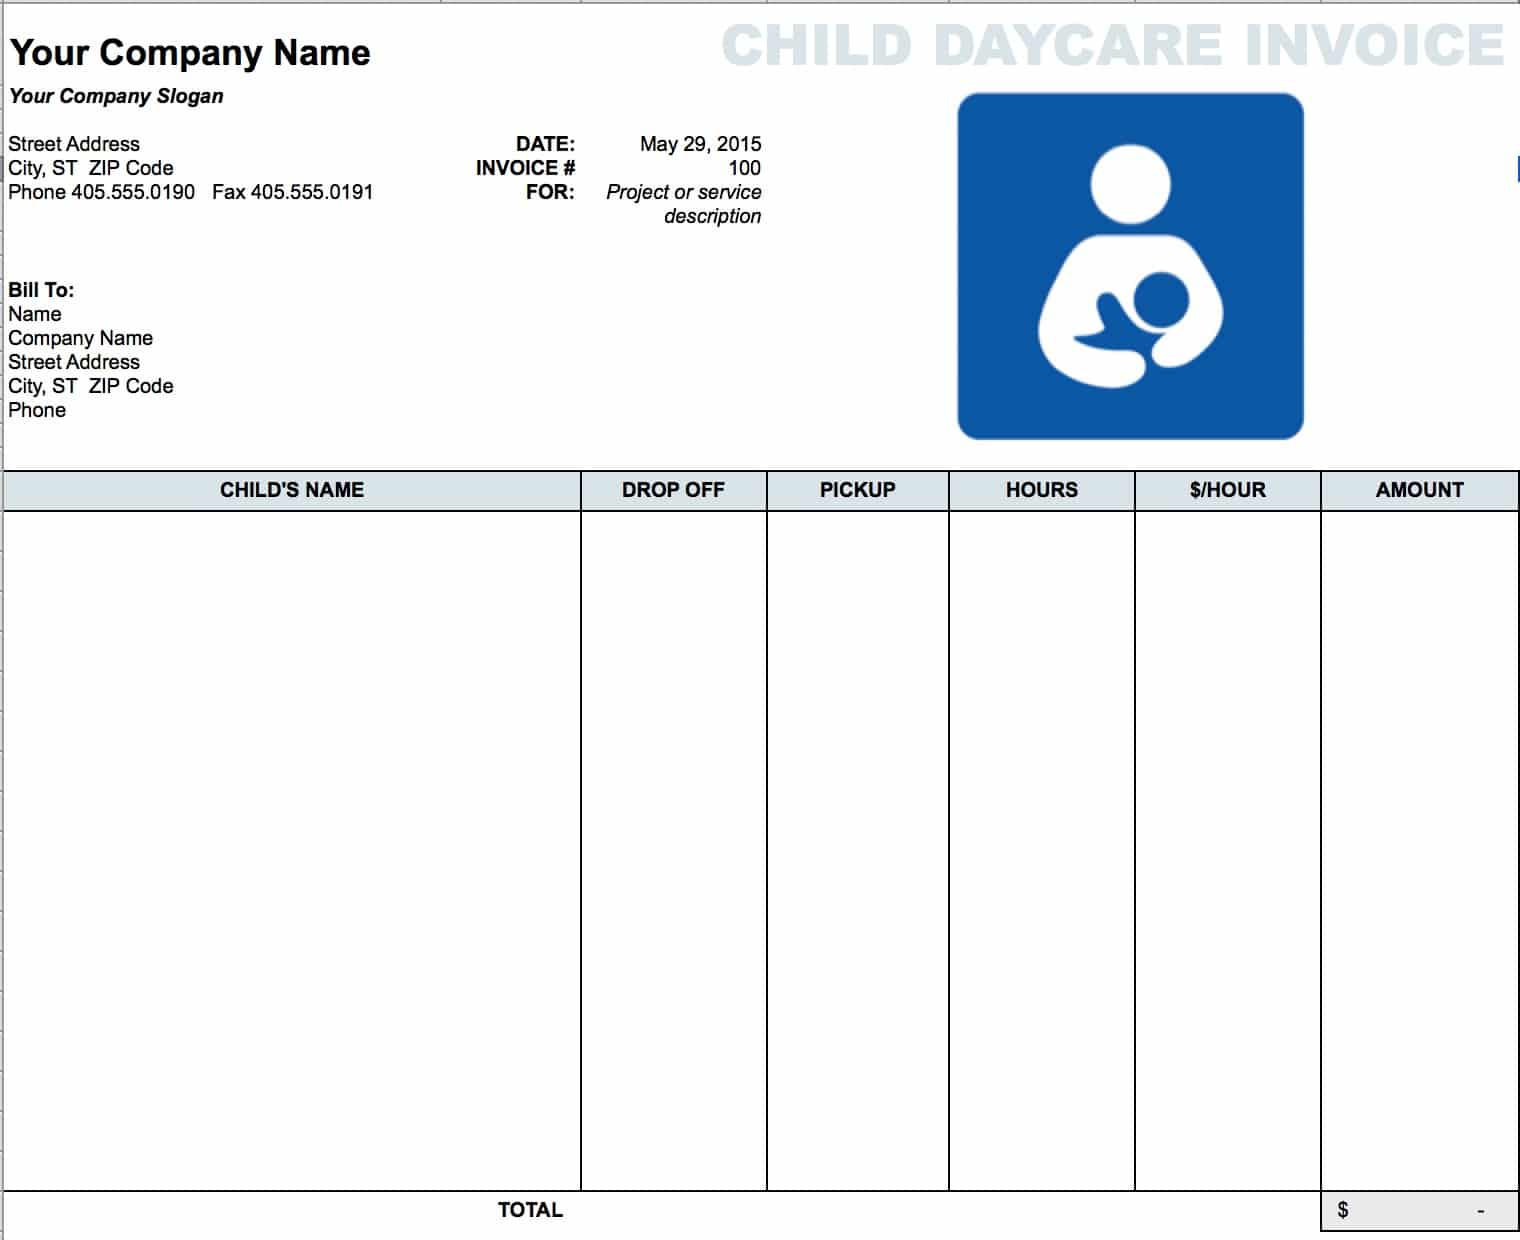 daycare child invoice template excel pdf word doc